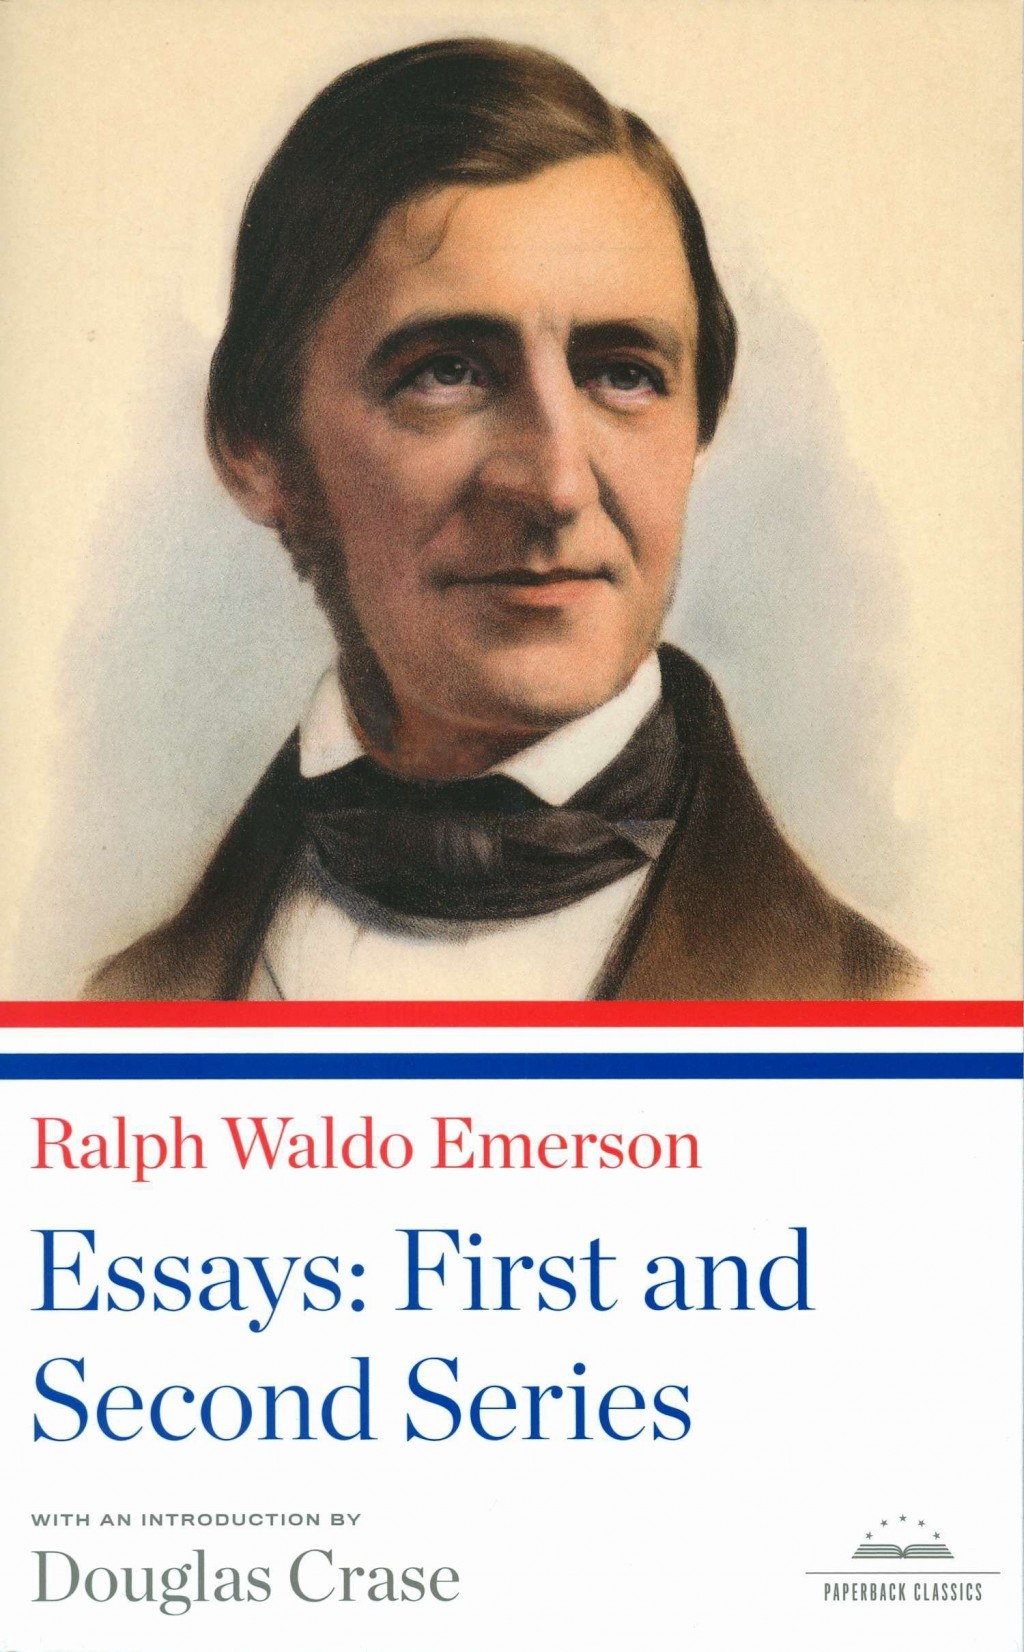 005 81bbtjzup6l Essay Example Emerson Dreaded Essays Self Reliance And Other Second Series Nature Large